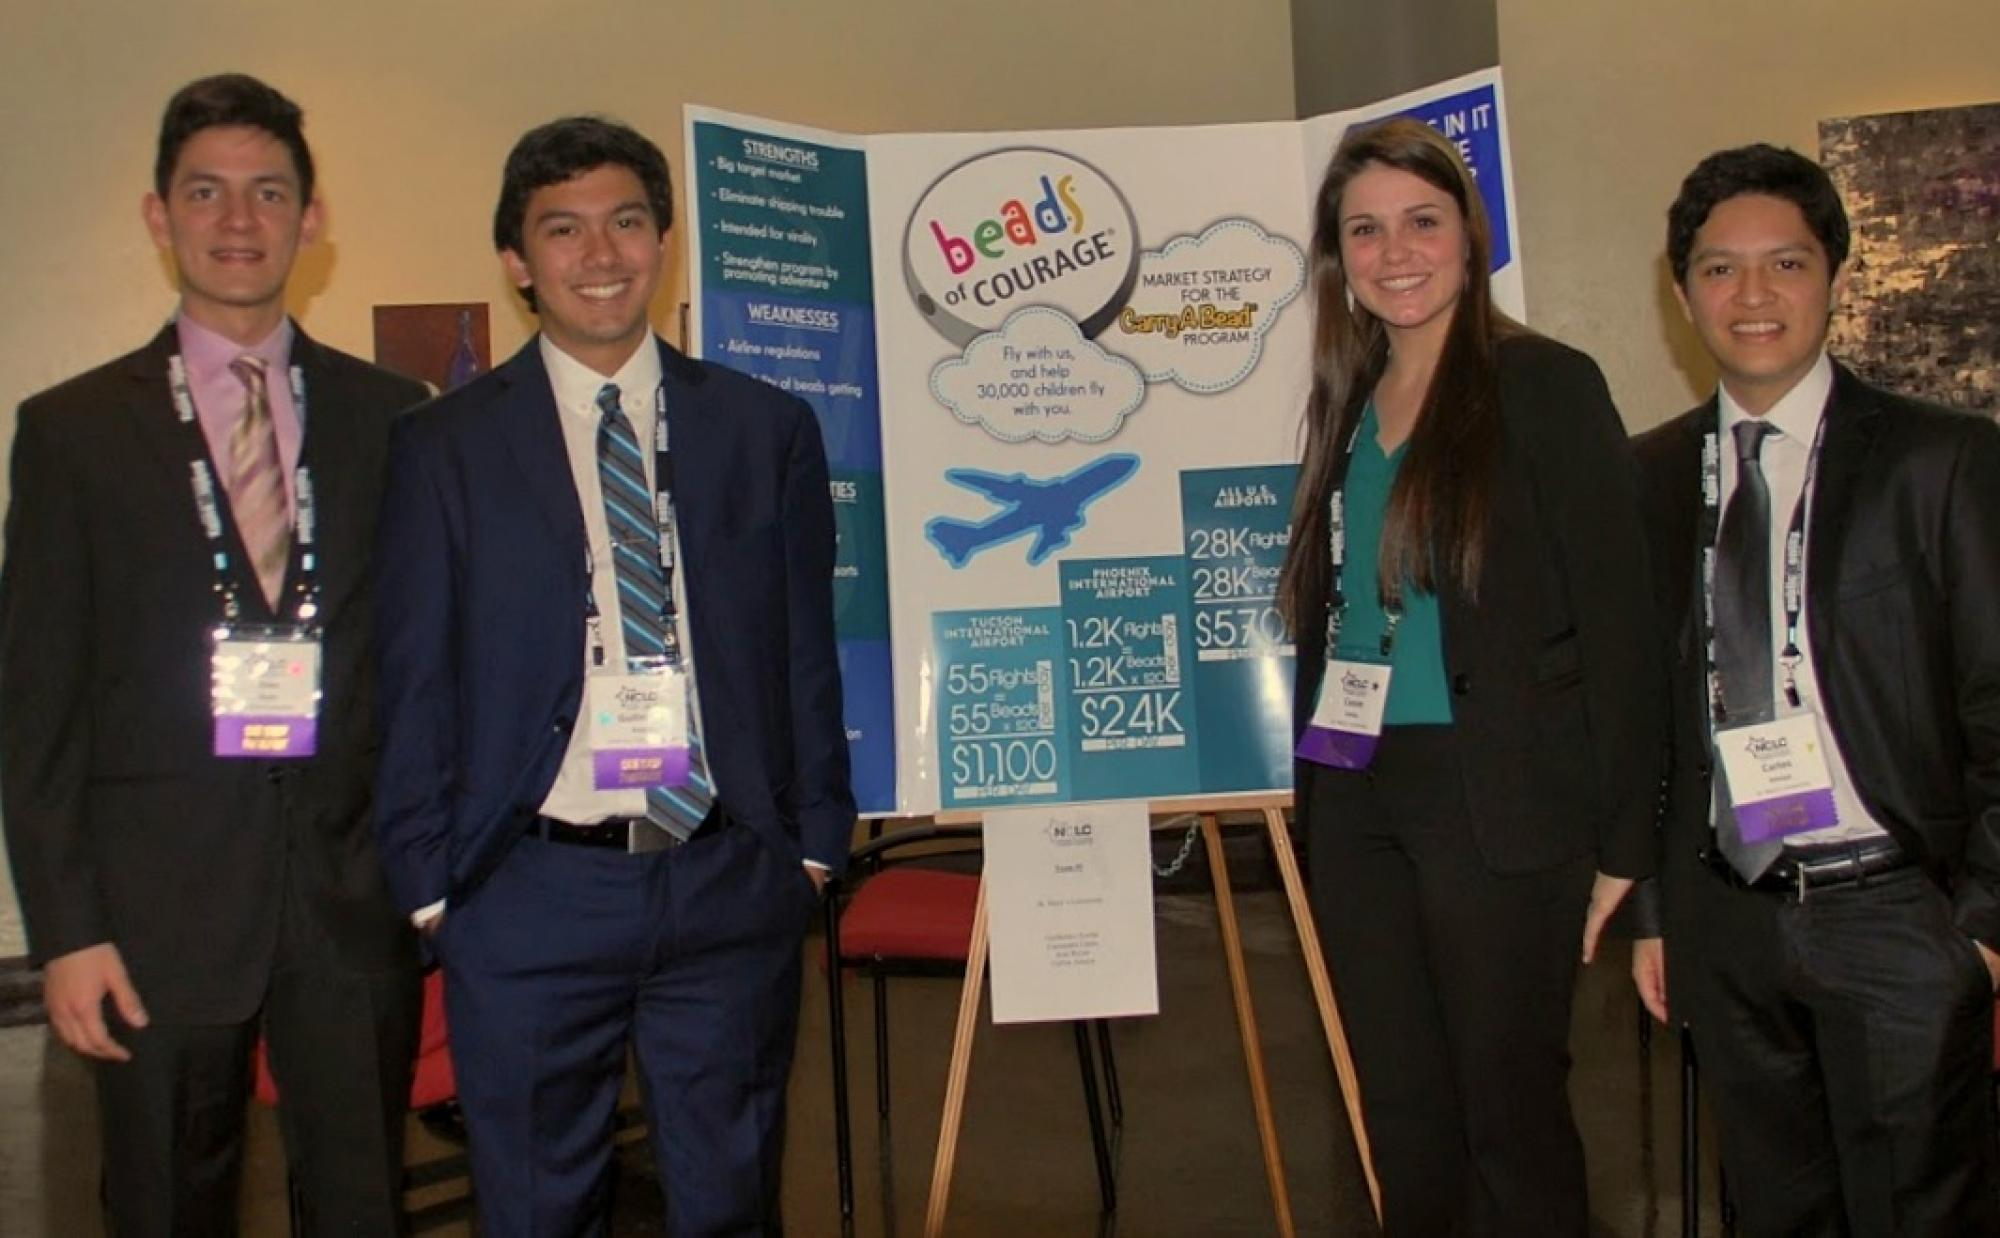 Students present their projects during the conference.